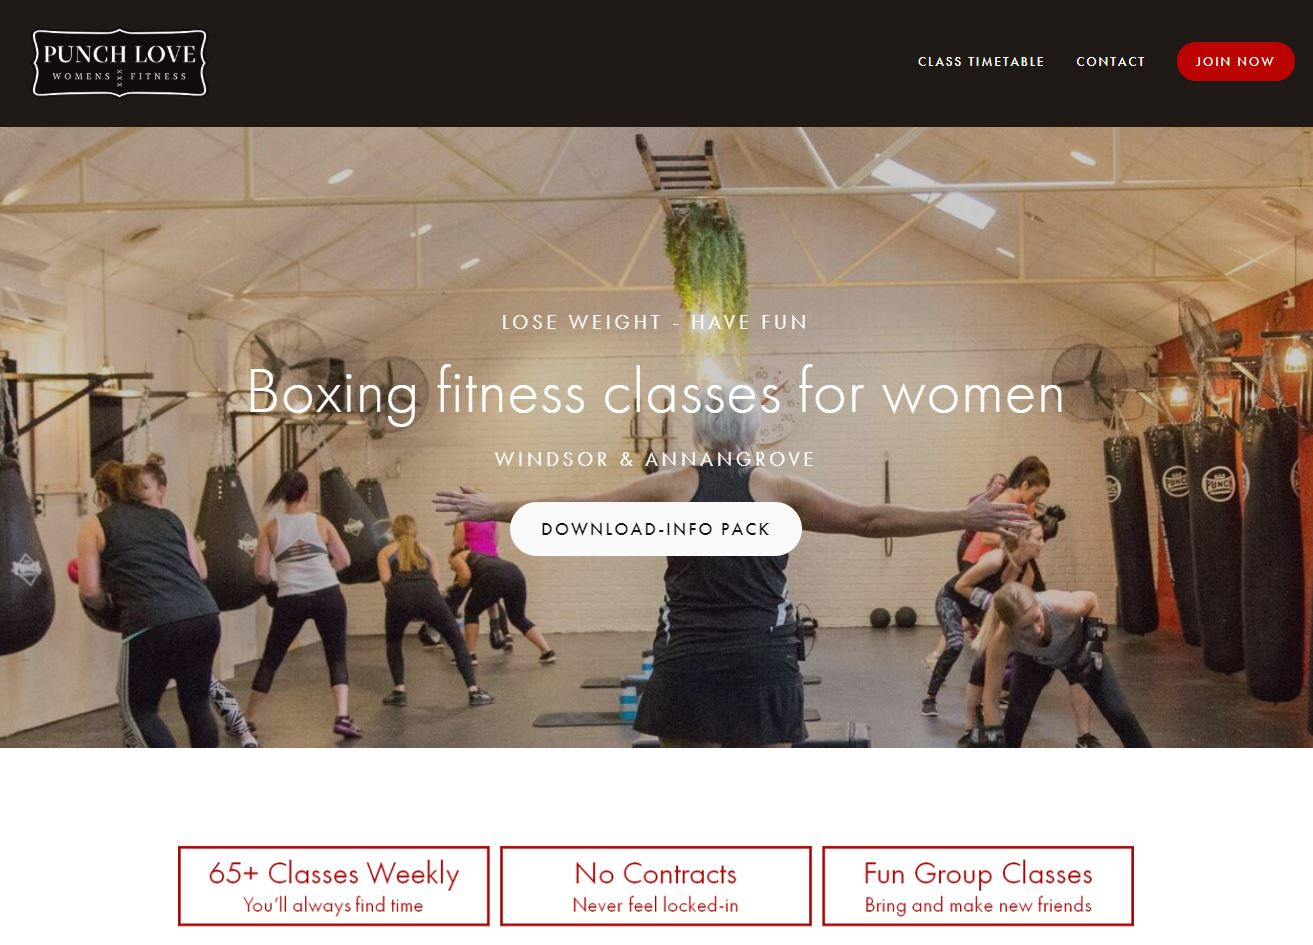 Gym and Fitness StoryBrand Website Example : Punch Love Womens Fitness